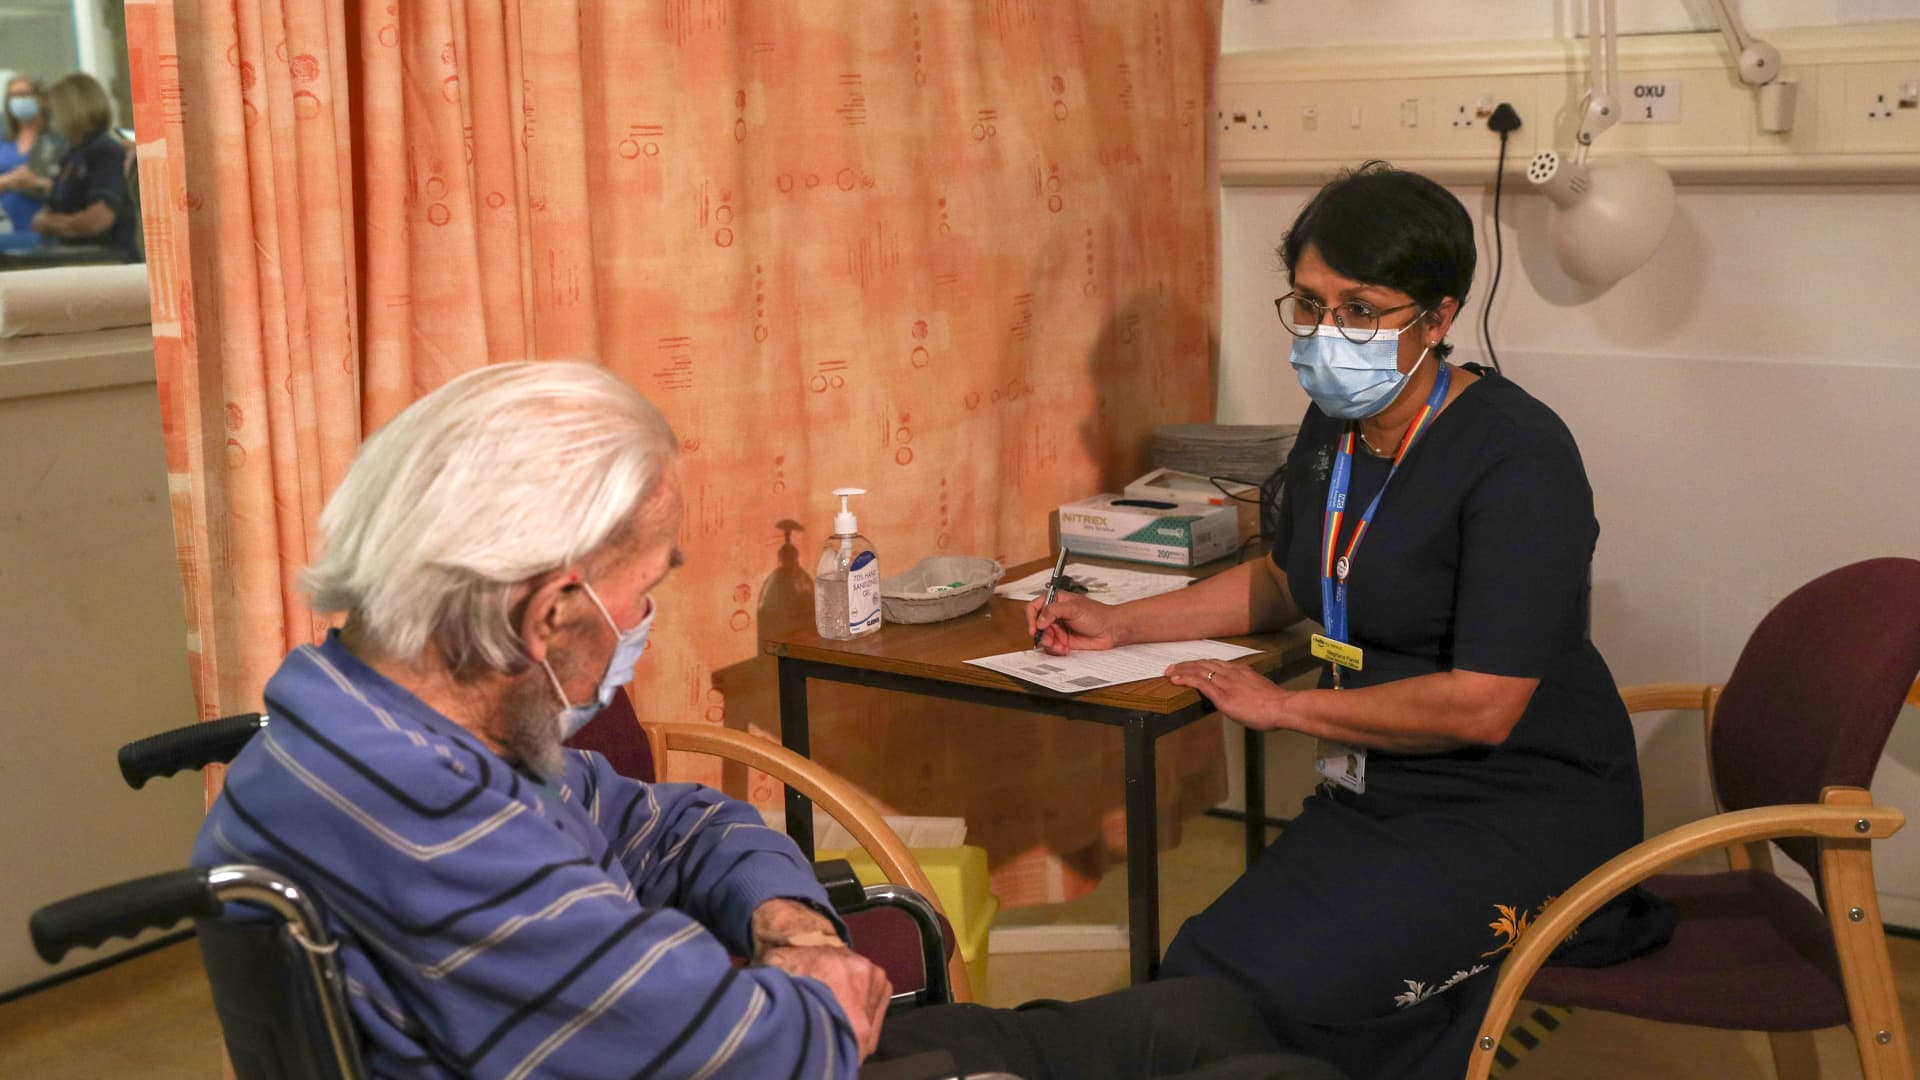 Meghana Pandit, chief medical officer at the Oxford University NHS Trust, right, speaks to Trevor Cowlett, 88, ahead of him receiving the AstraZeneca Plc and the University of Oxford Covid-19 vaccine at the Churchill Hospital in Oxford, U.K., on Monday, Jan. 4, 2021. U.K. regulators cleared the shot last week, marking its first approval worldwide.